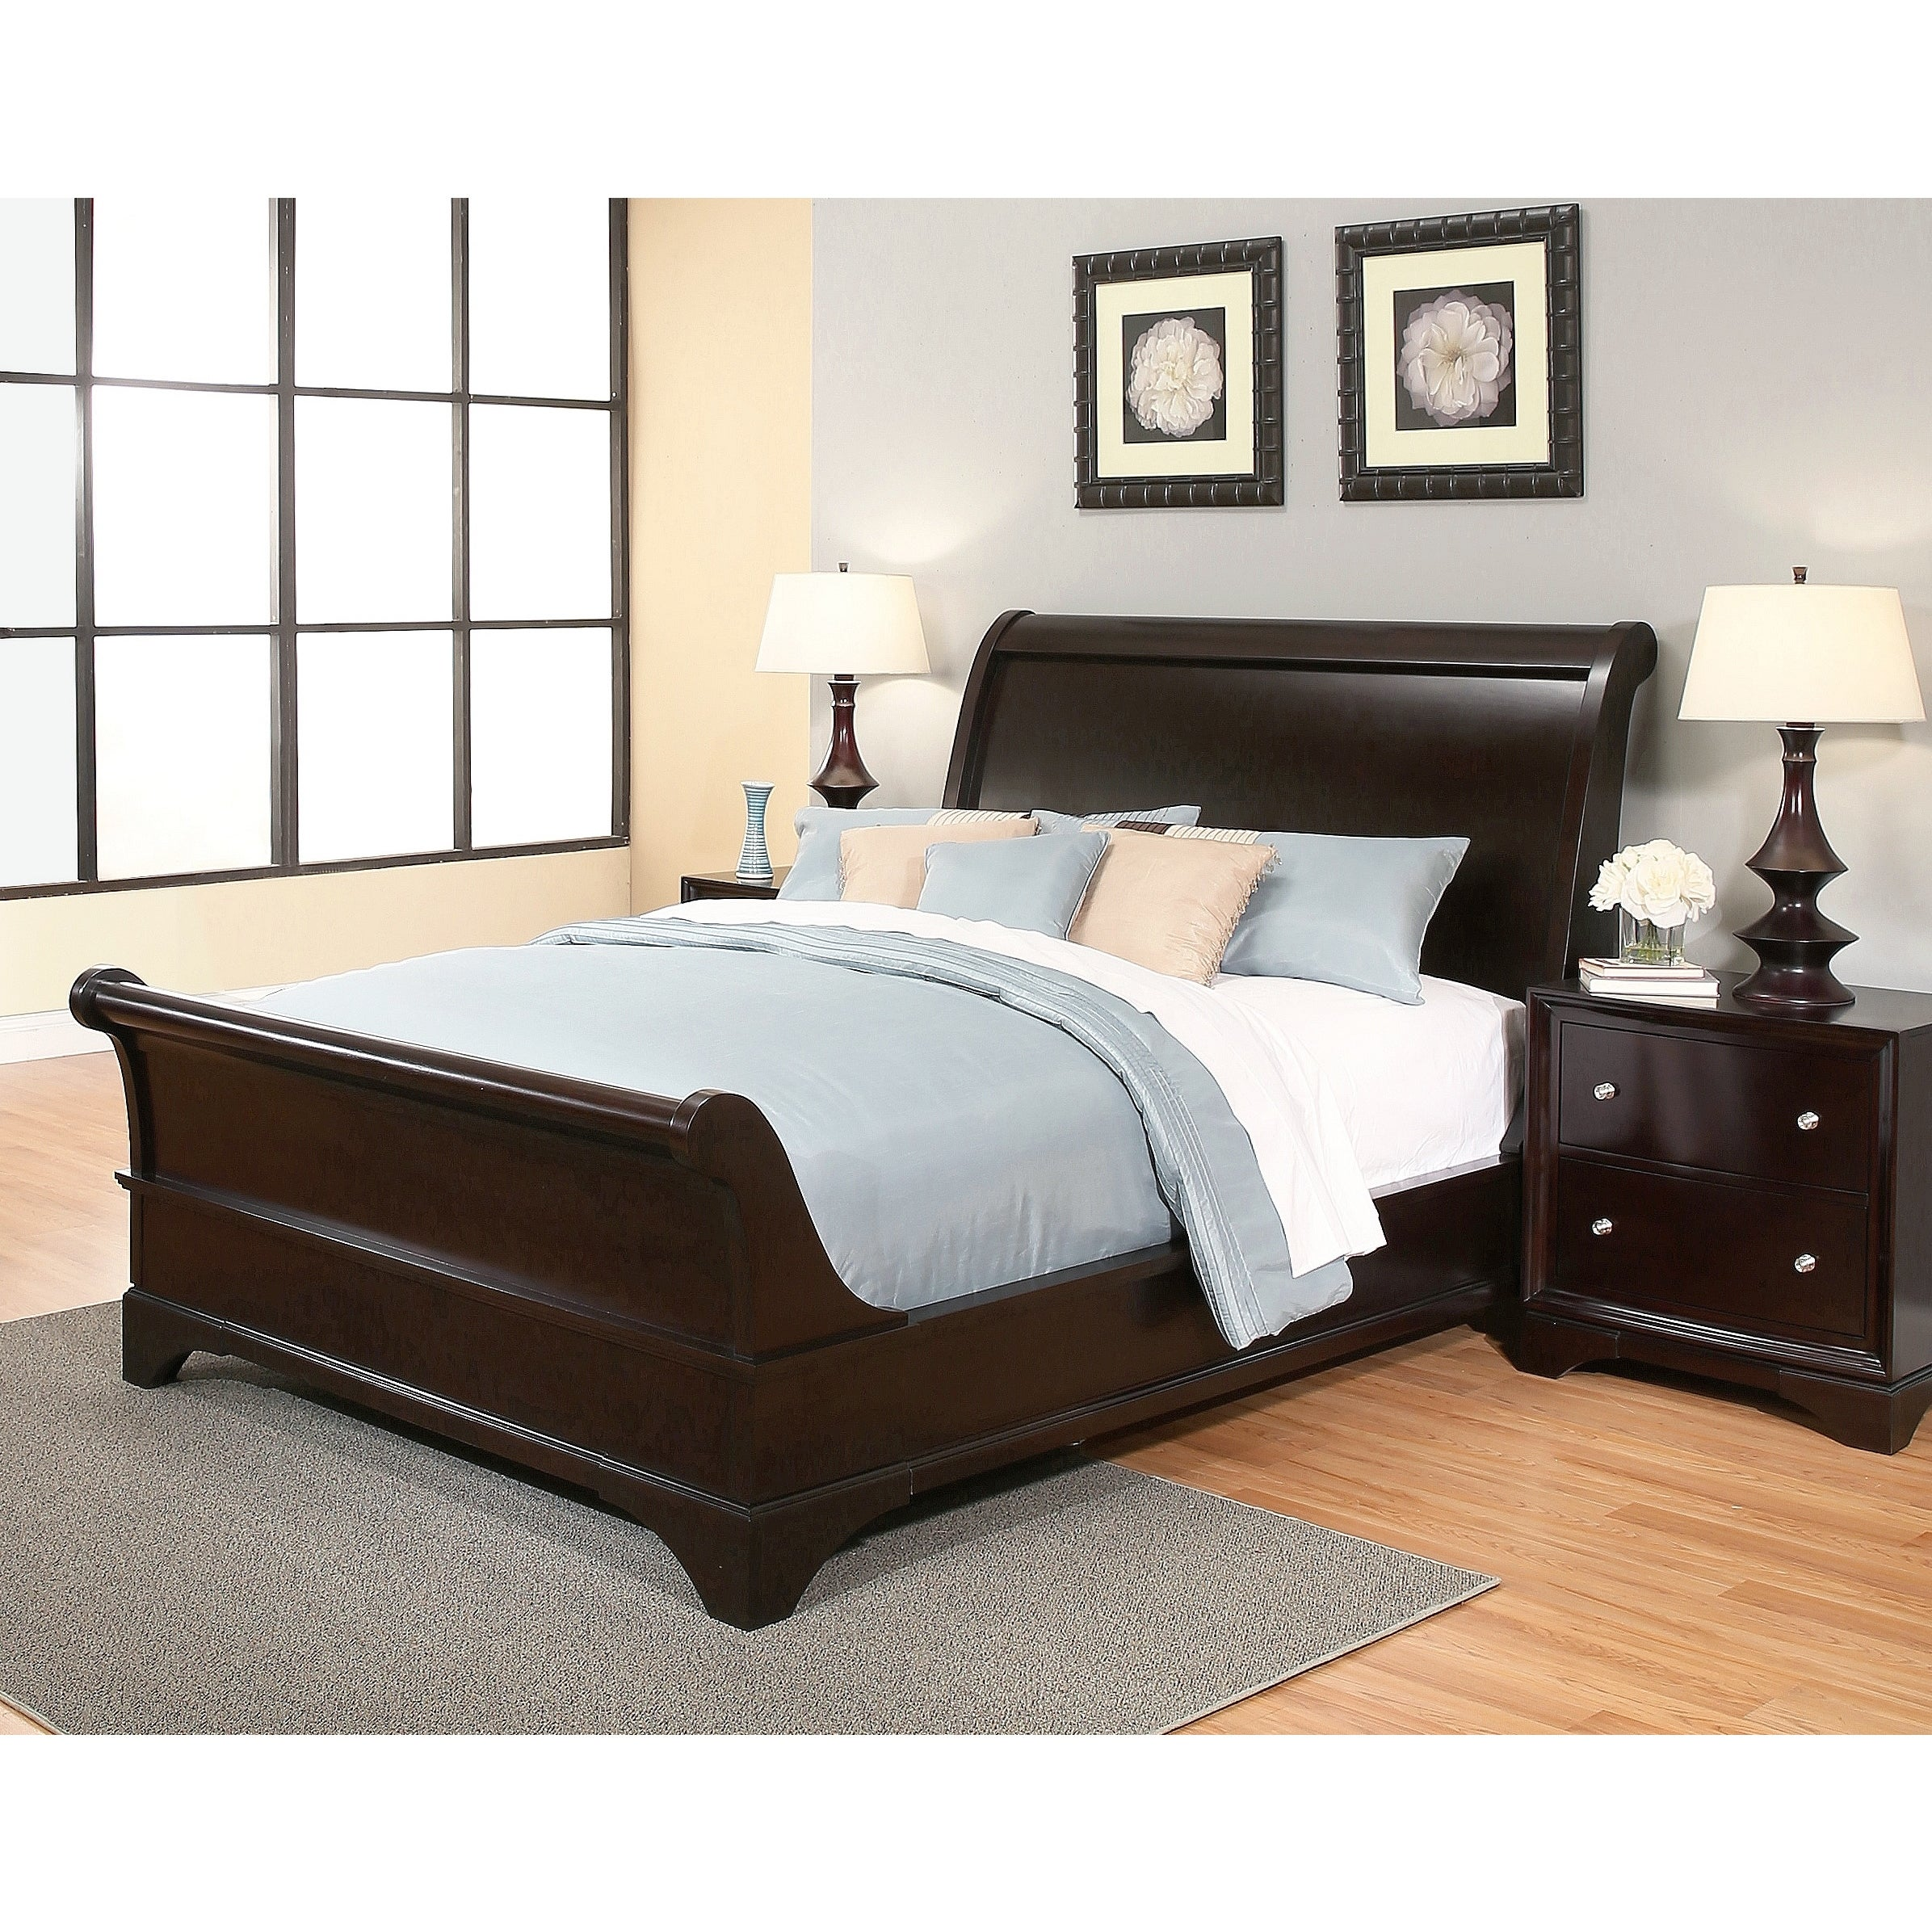 Picture of: Abbyson Kingston Espresso Sleigh Queen Size Bed On Sale Overstock 6091975